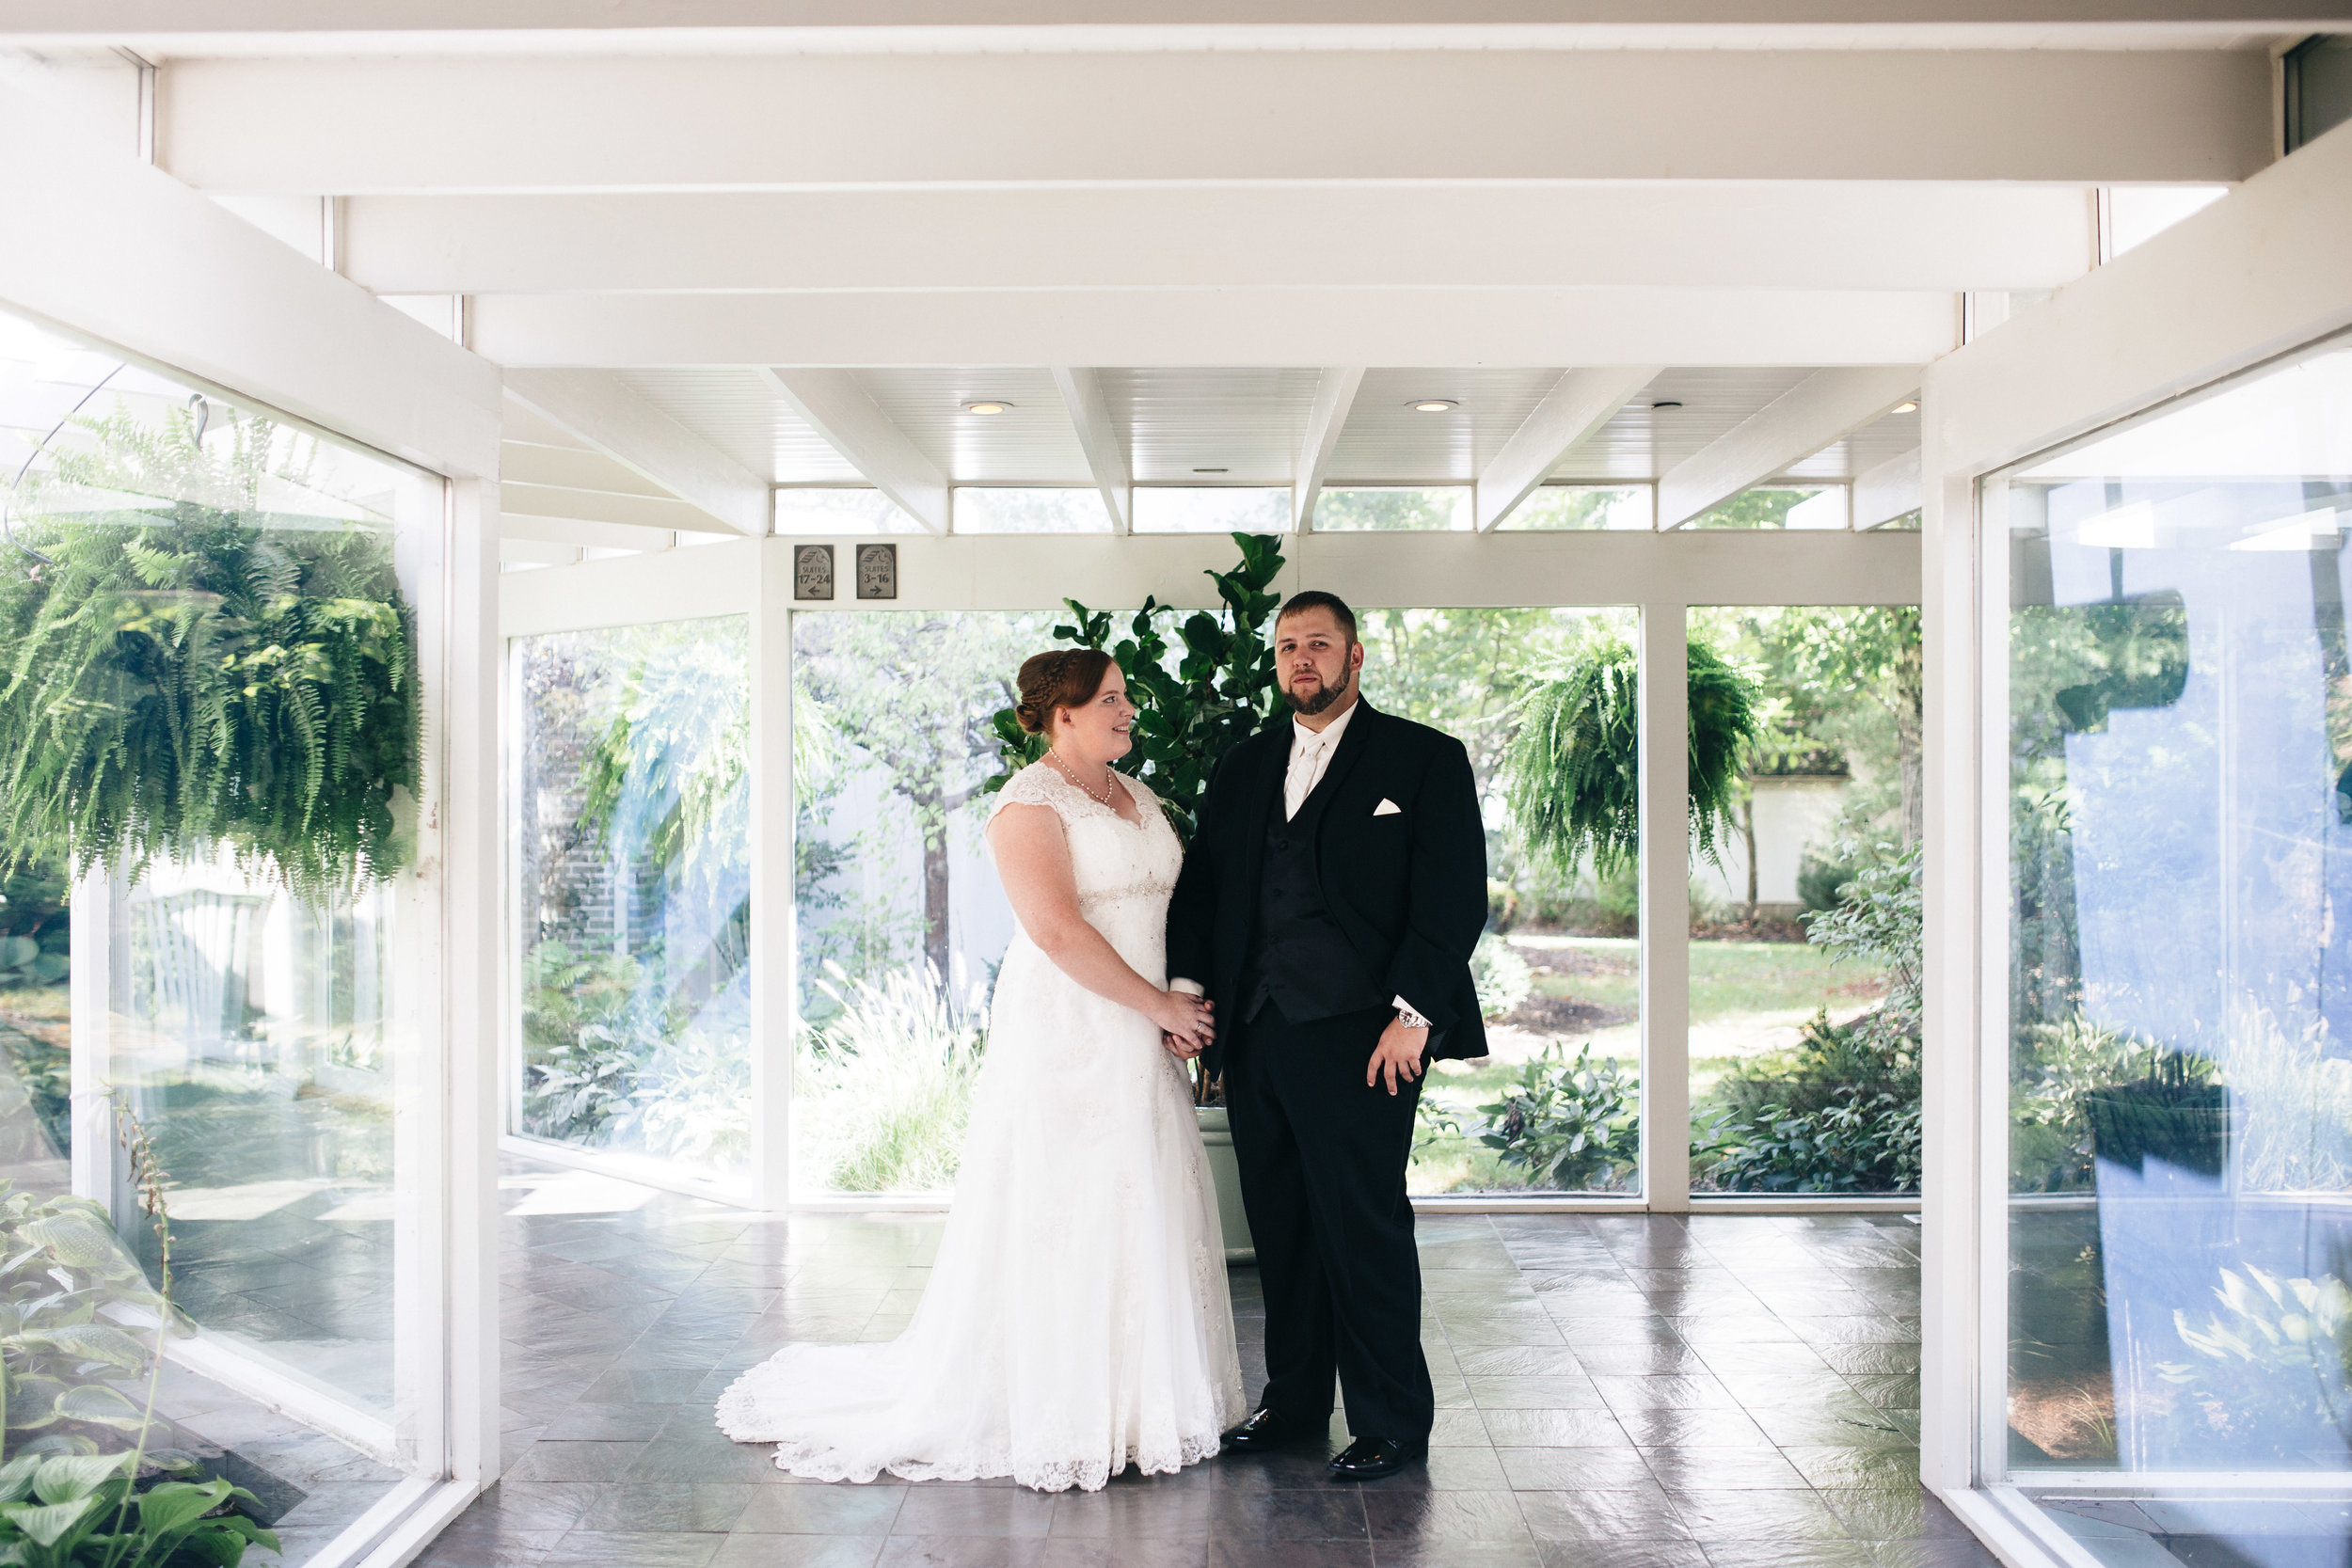 Bride and groom photography at Walden Inn & Spa